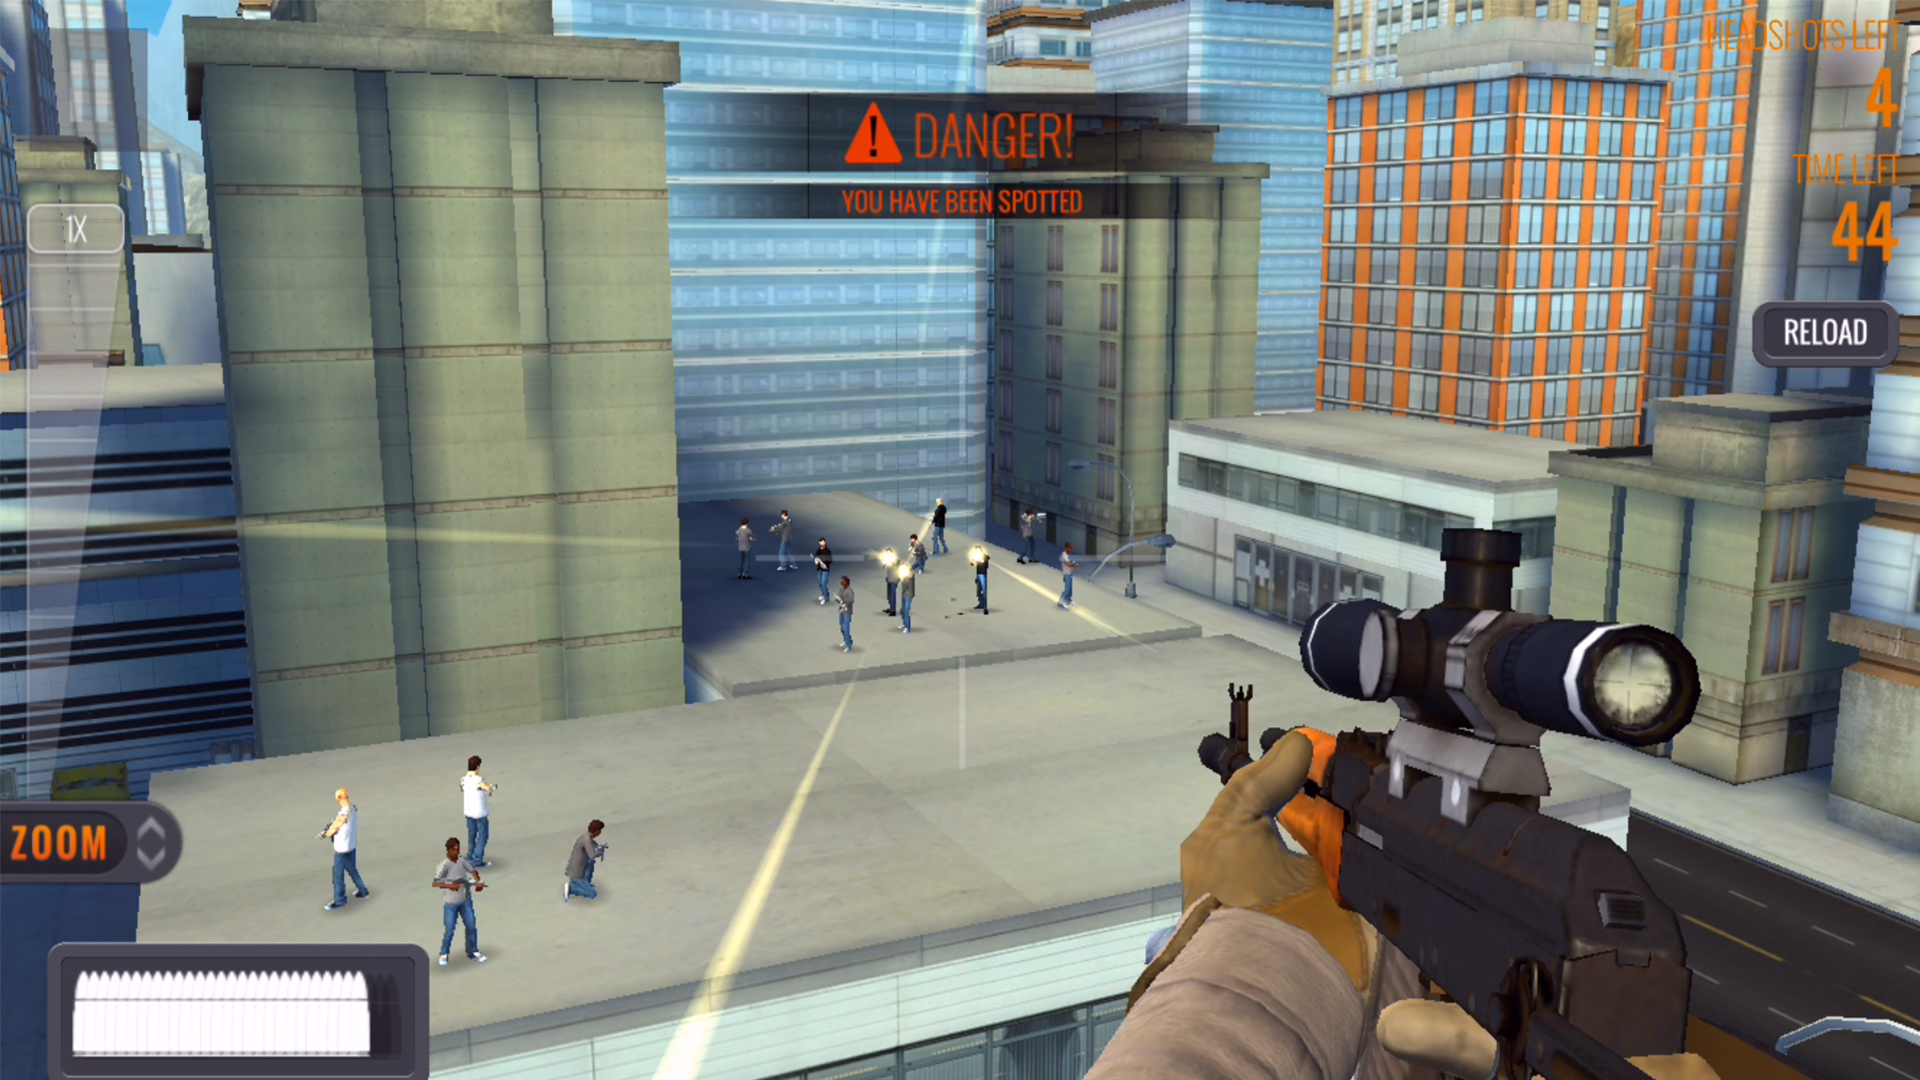 3D Gun Games No Download sniper 3d assassin: free to play on steam